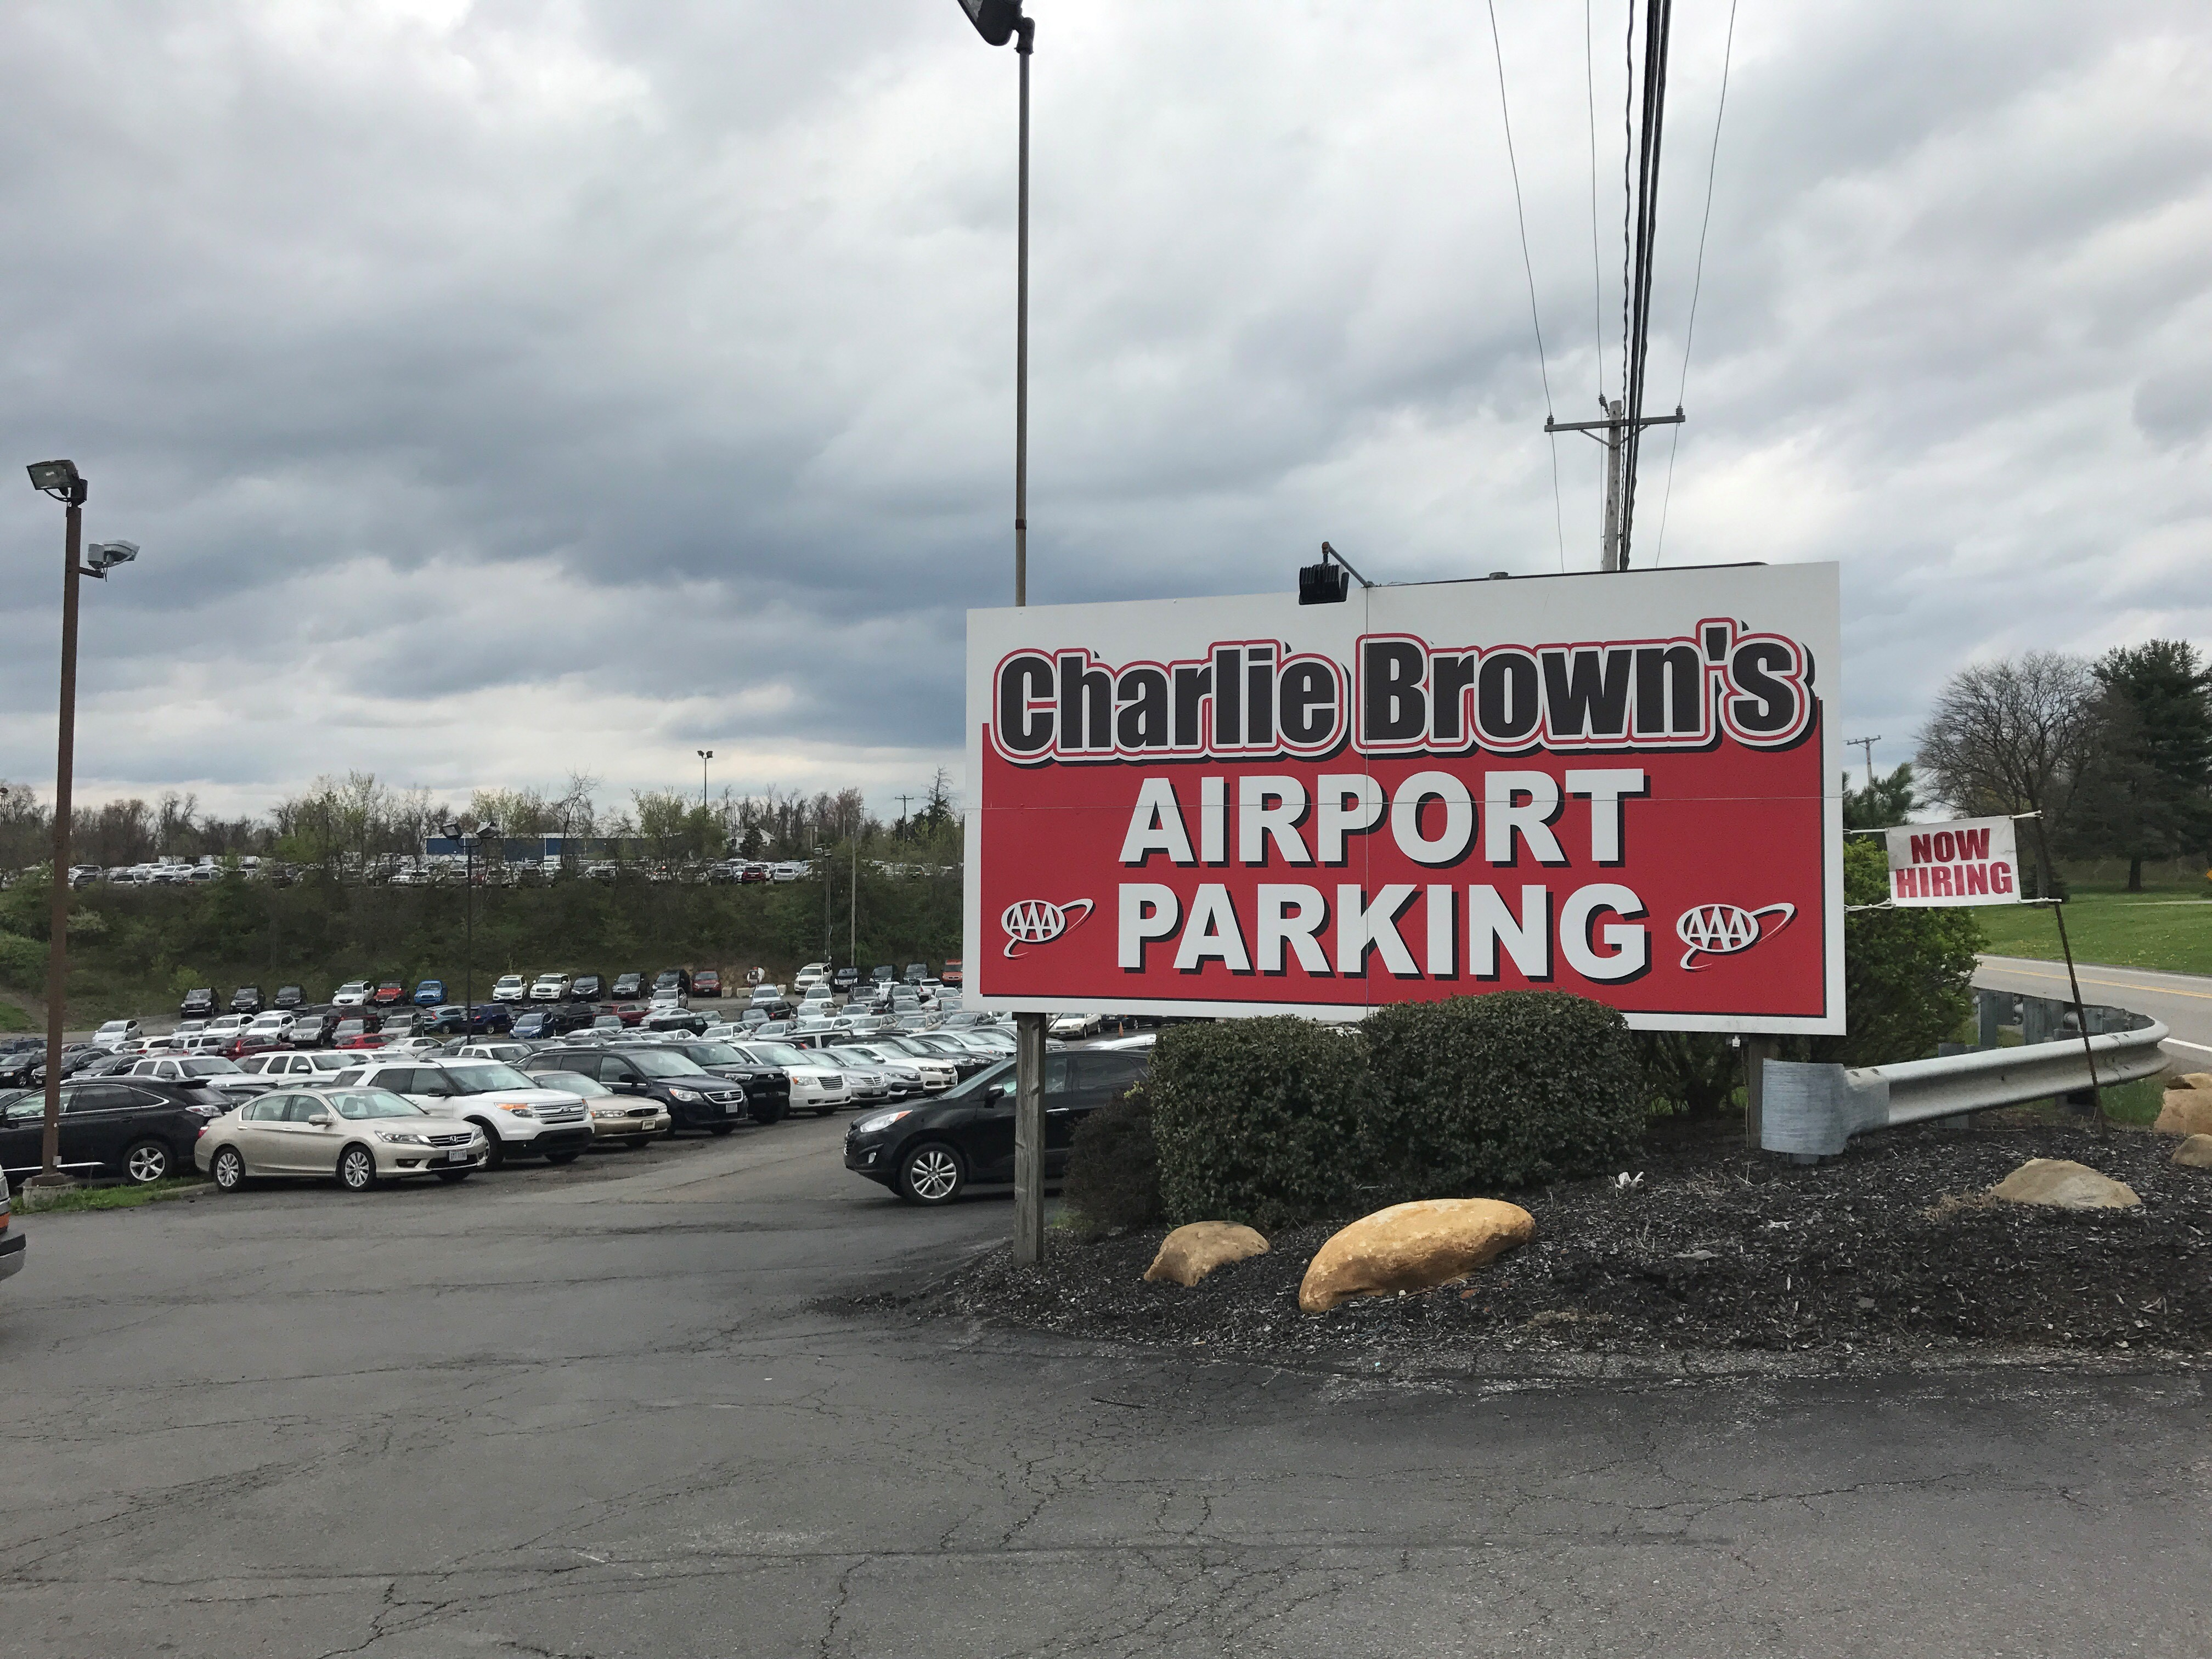 Charlie Brown's Airport Parking image 0